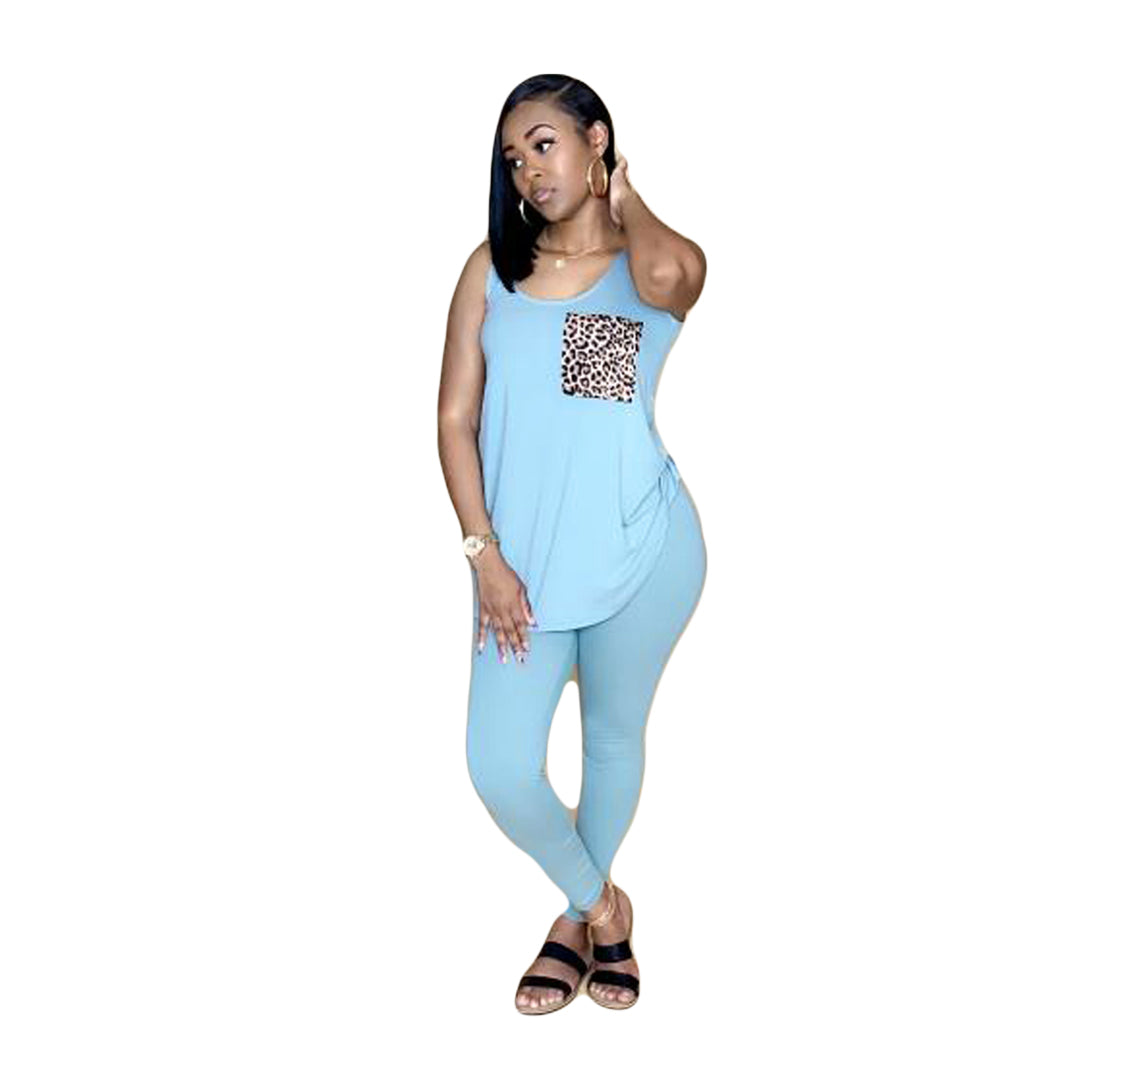 Women Two Pieces Sets Summer Tracksuits Sleeveless O-Neck Tops+Pants Suit Sporty Fitness Leopard Outfits 2 Pcs Street G8221